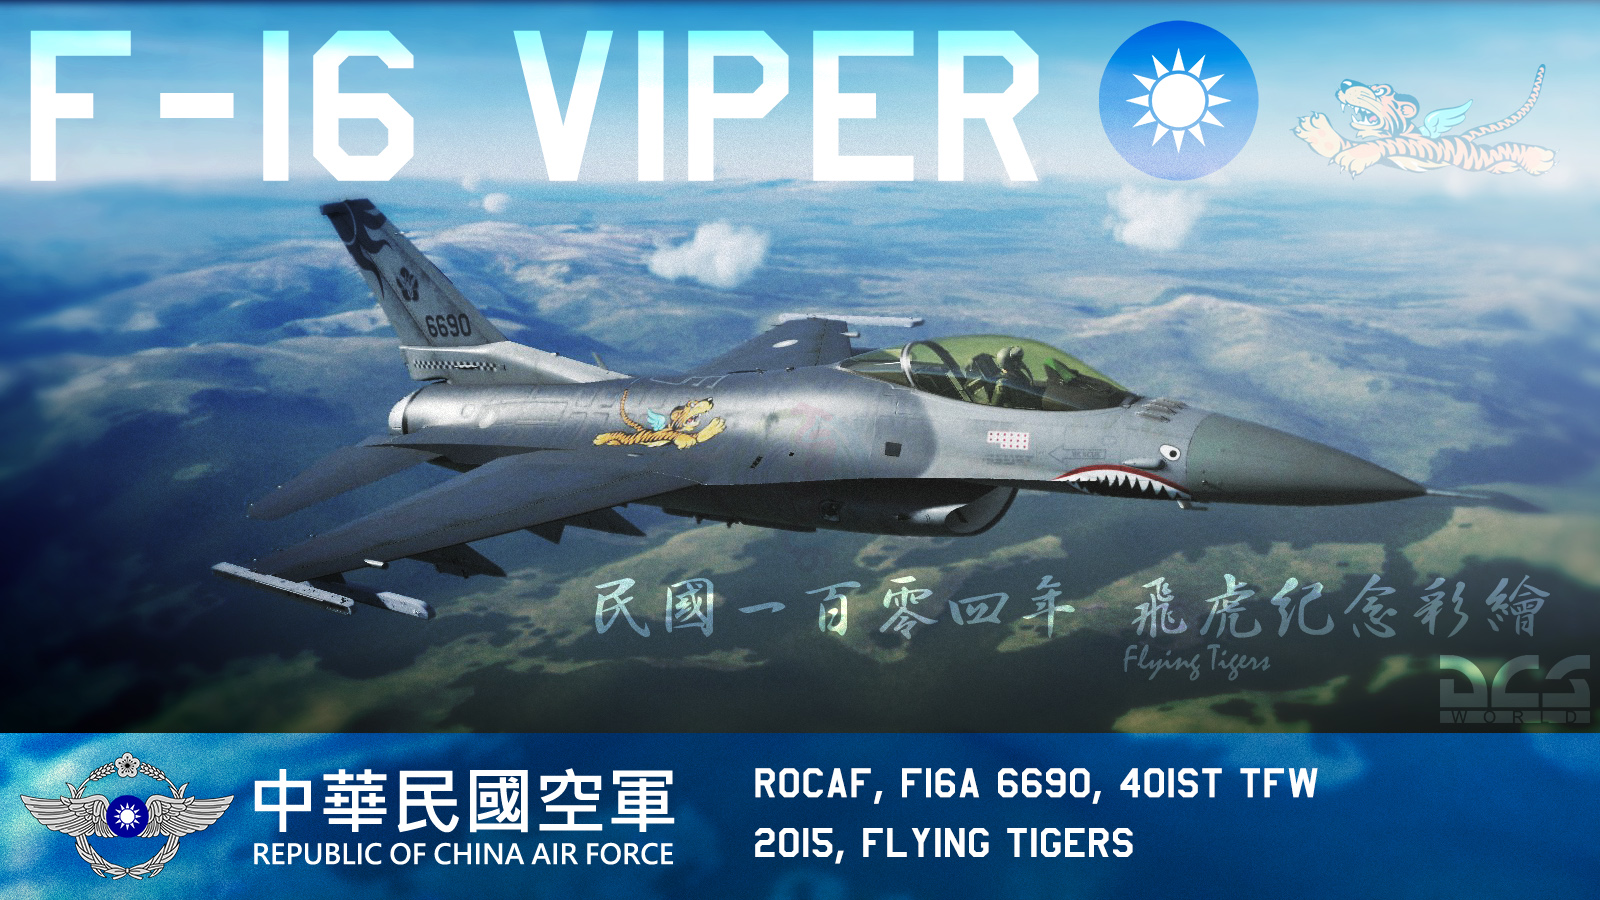 [Ver.3.0]ROCAF, F16A 6690, 401st TFW, 2015, Flying Tigers